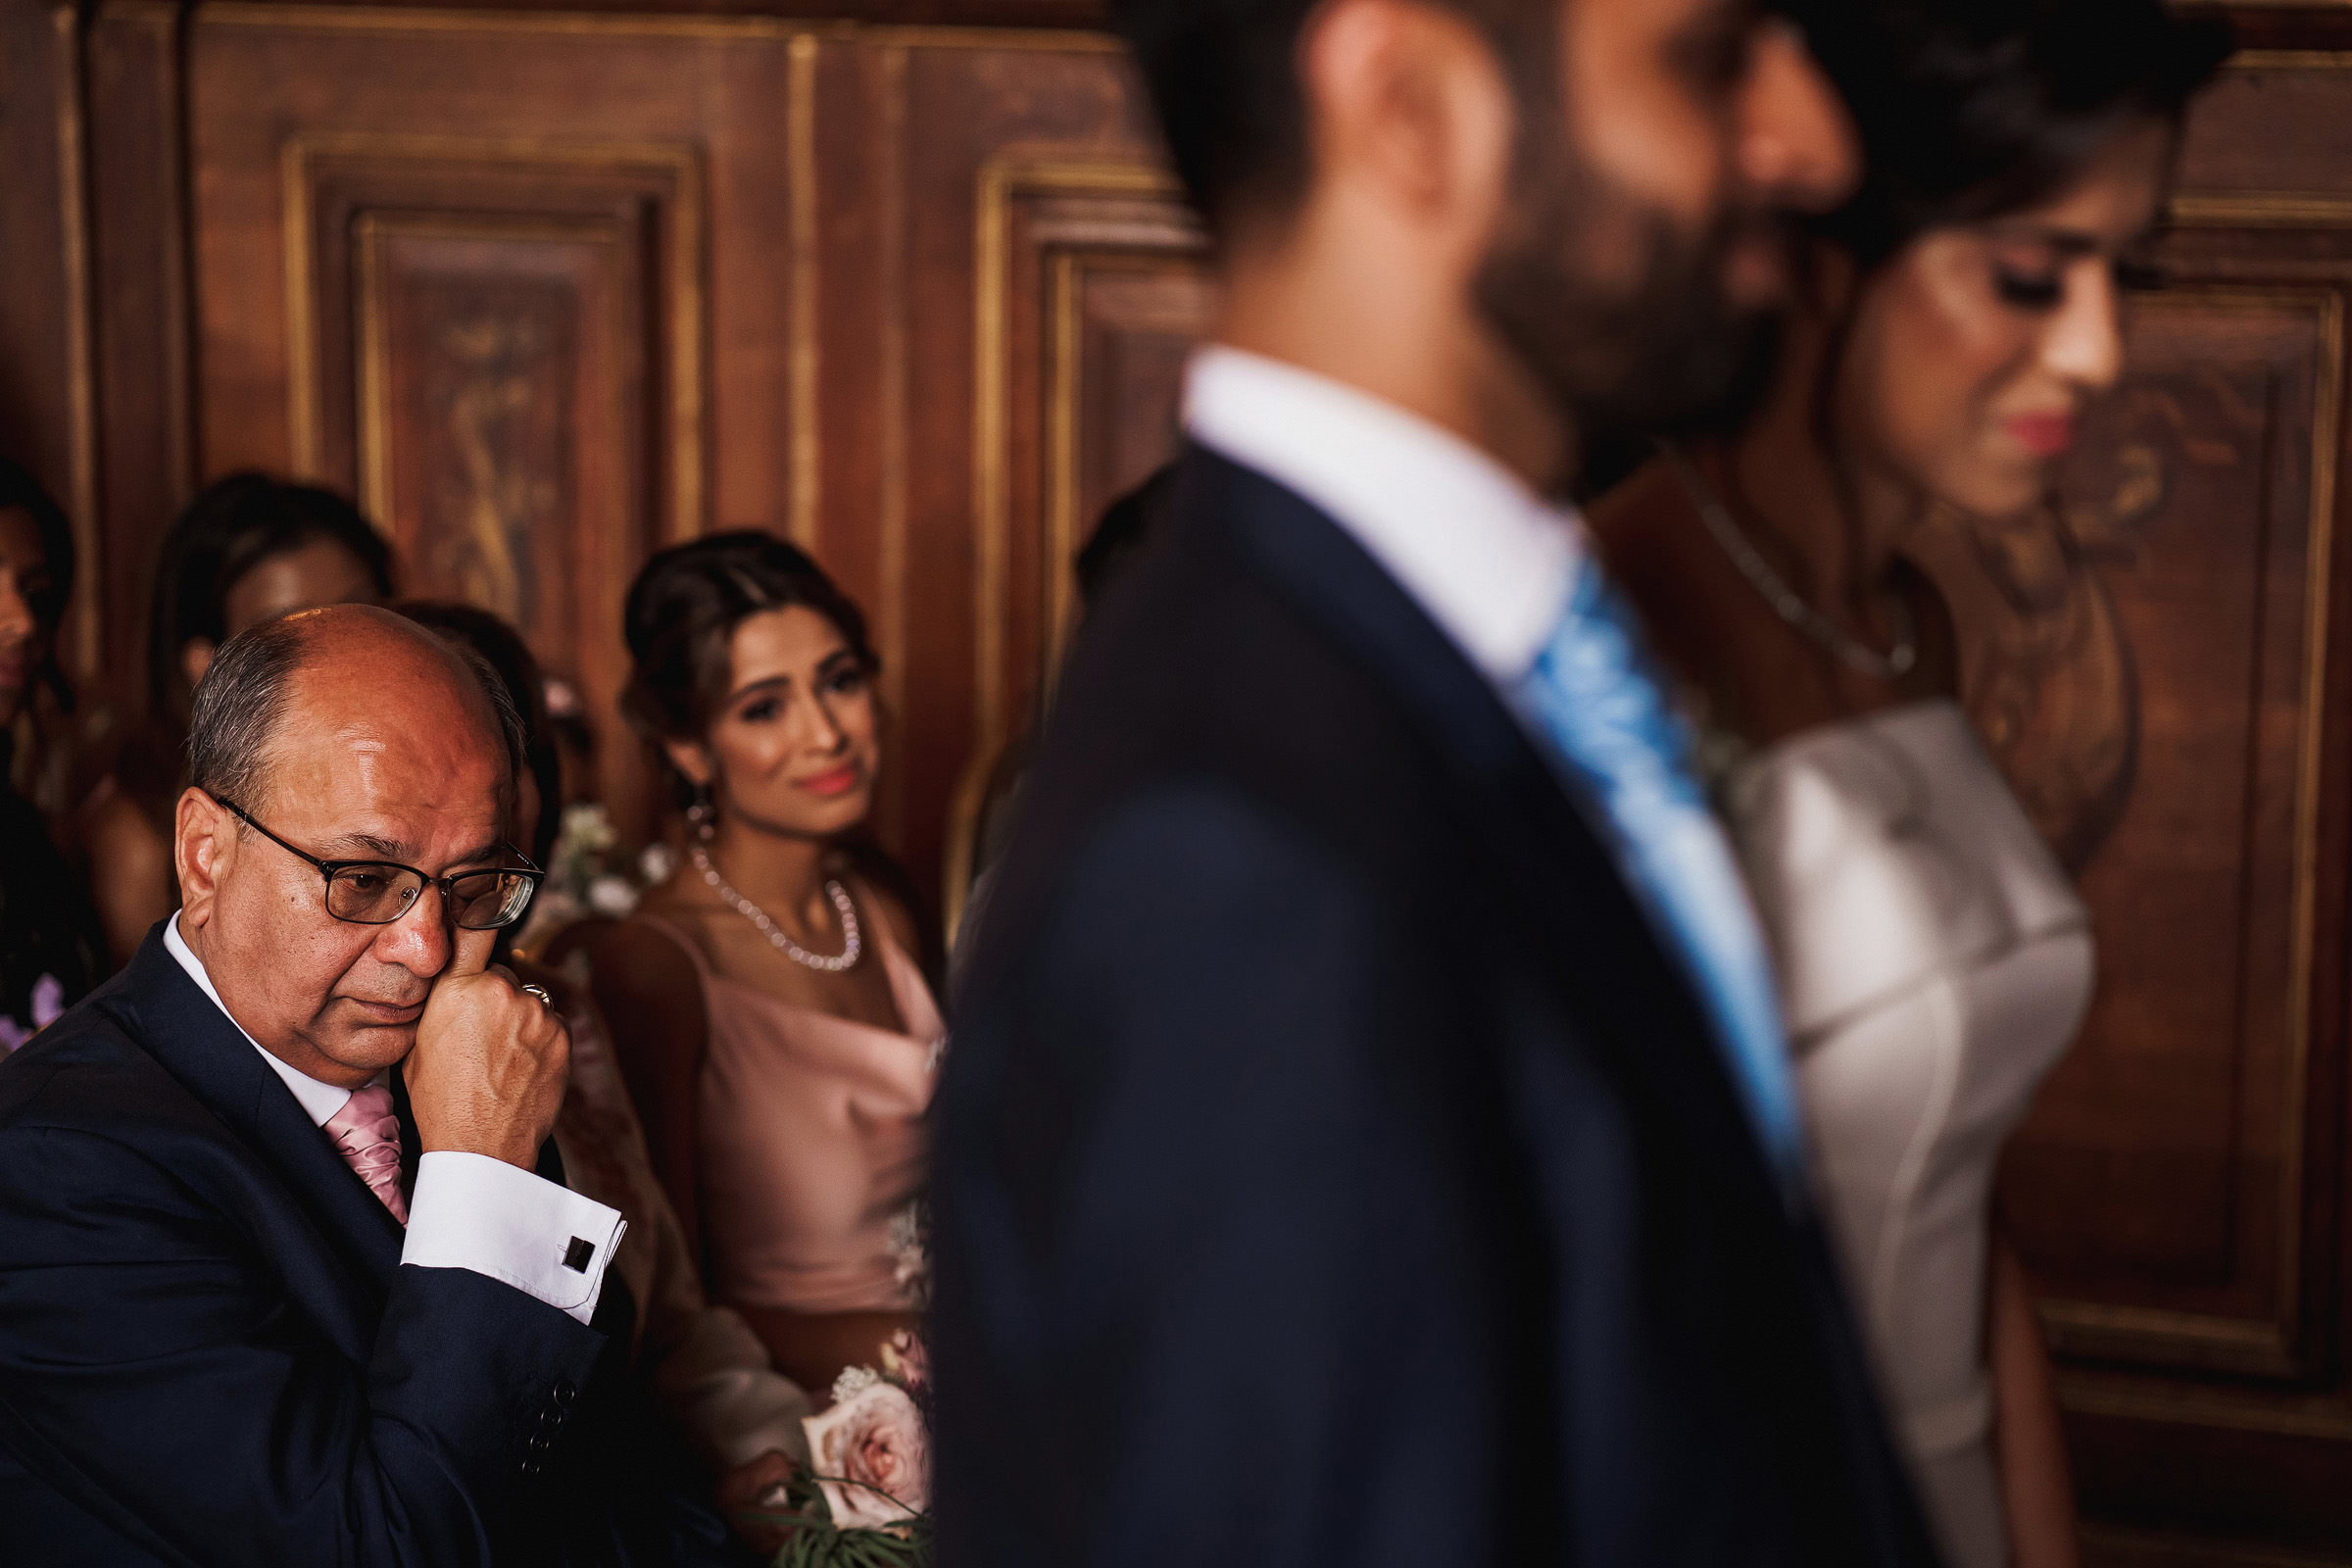 Father crying during wedding ceremony photographed by f5 best london photographer